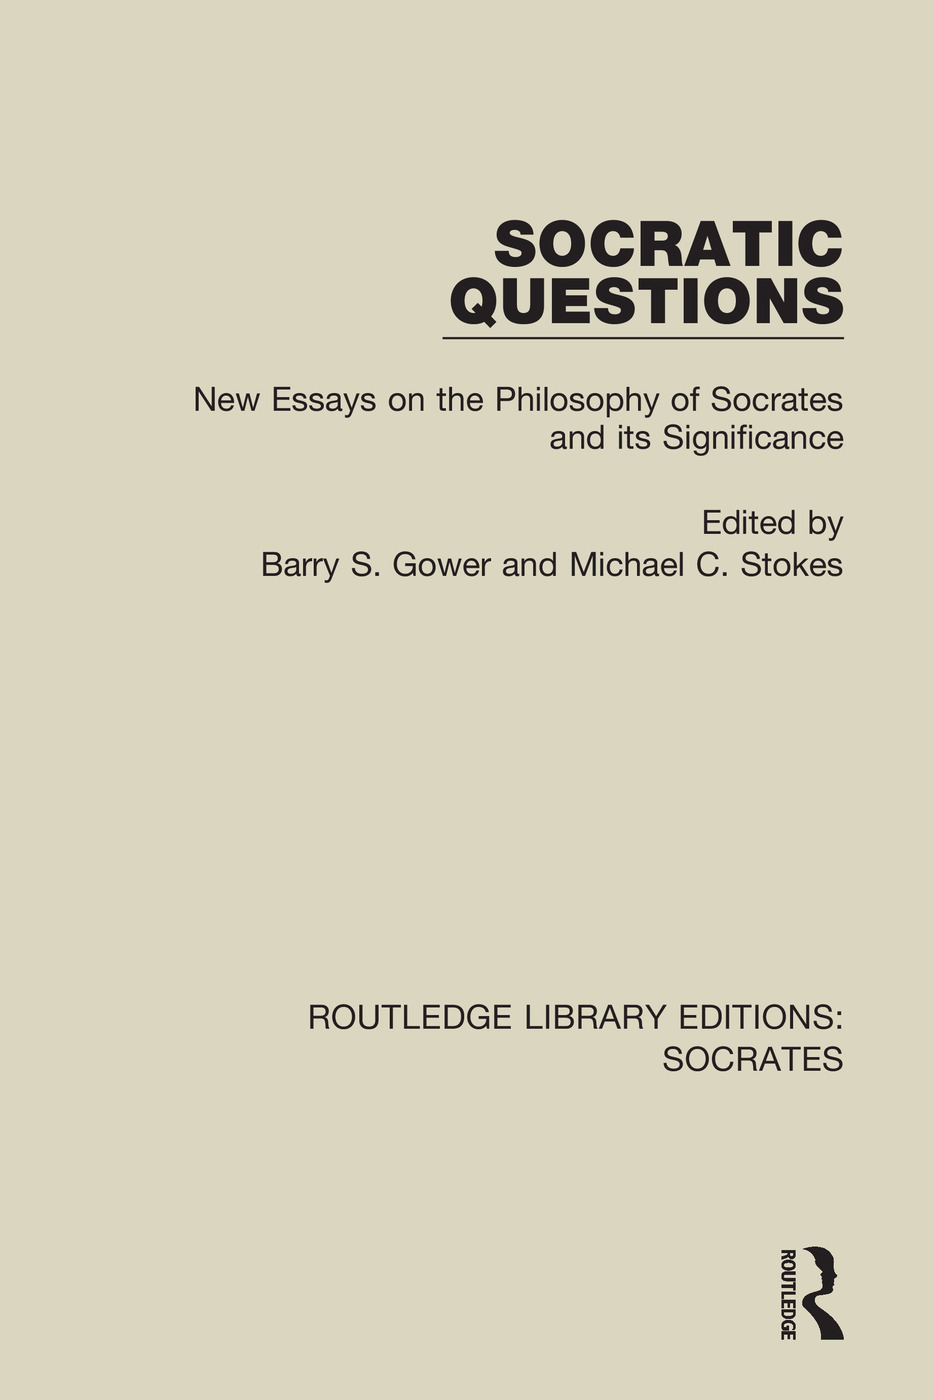 Socratic Questions: New Essays on the Philosophy of Socrates and its Significance book cover